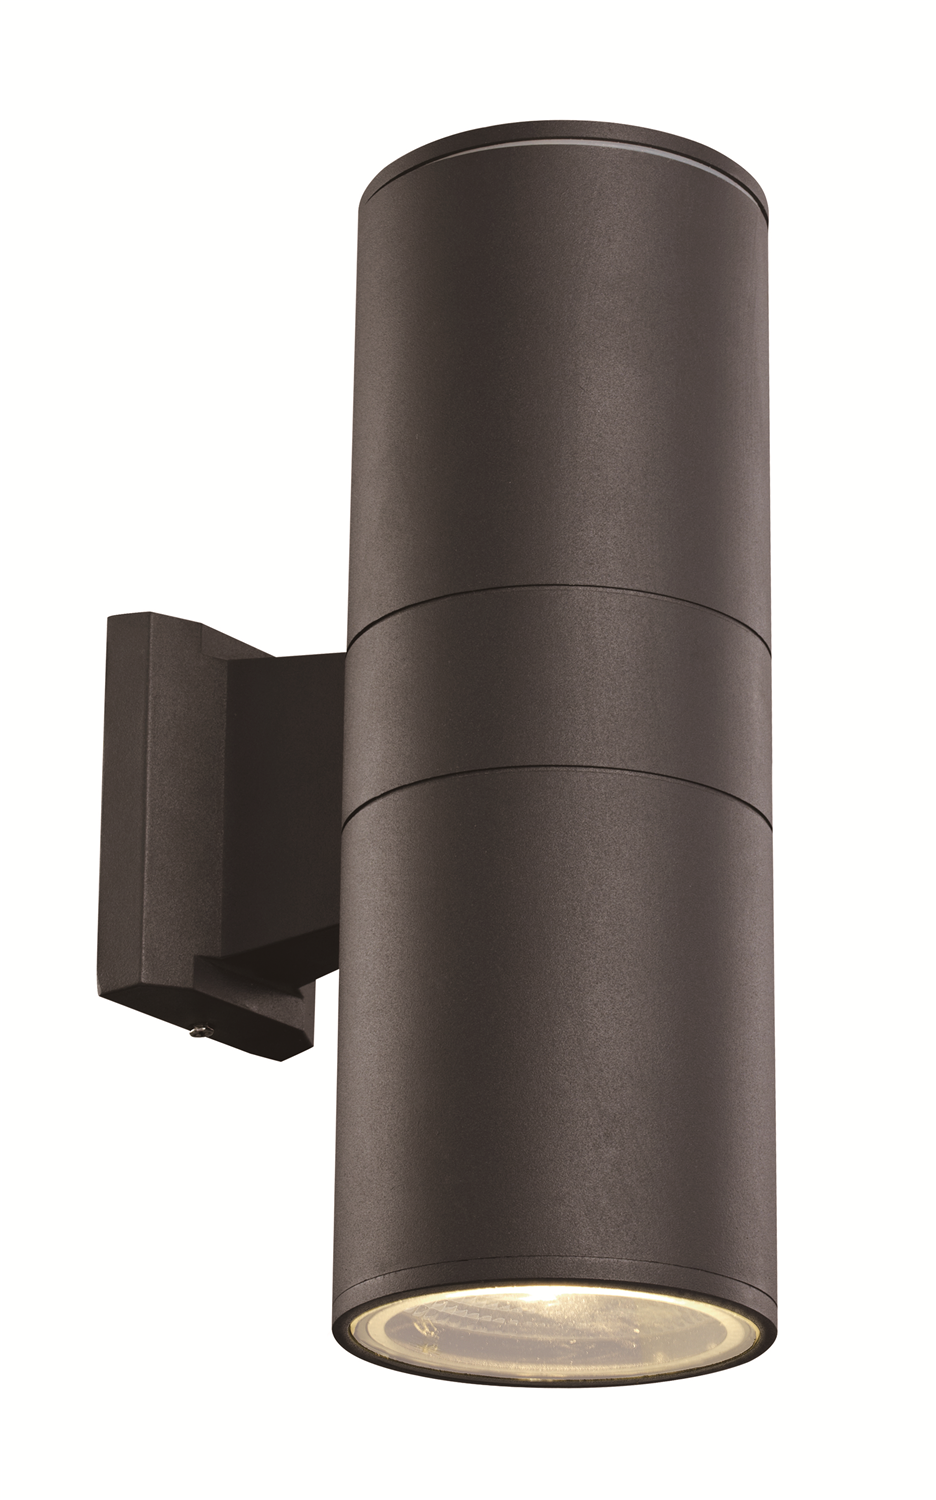 4096 Outdoor Wall Light By Trans Globe Led 40960 Bk